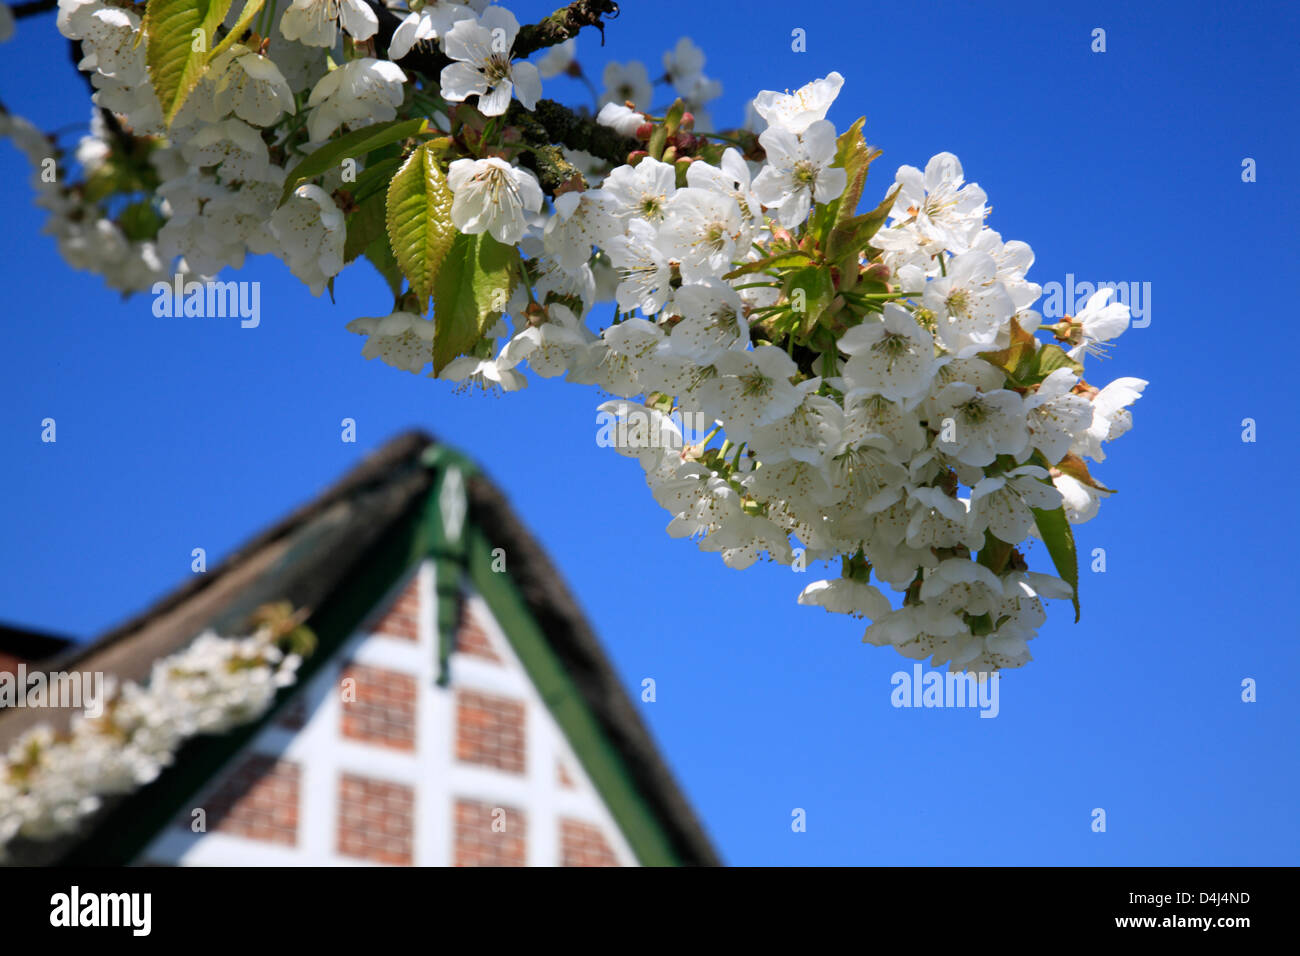 Altes Land, cherry blossom near old thatched farmhouse, Lower Saxony, Germany - Stock Image